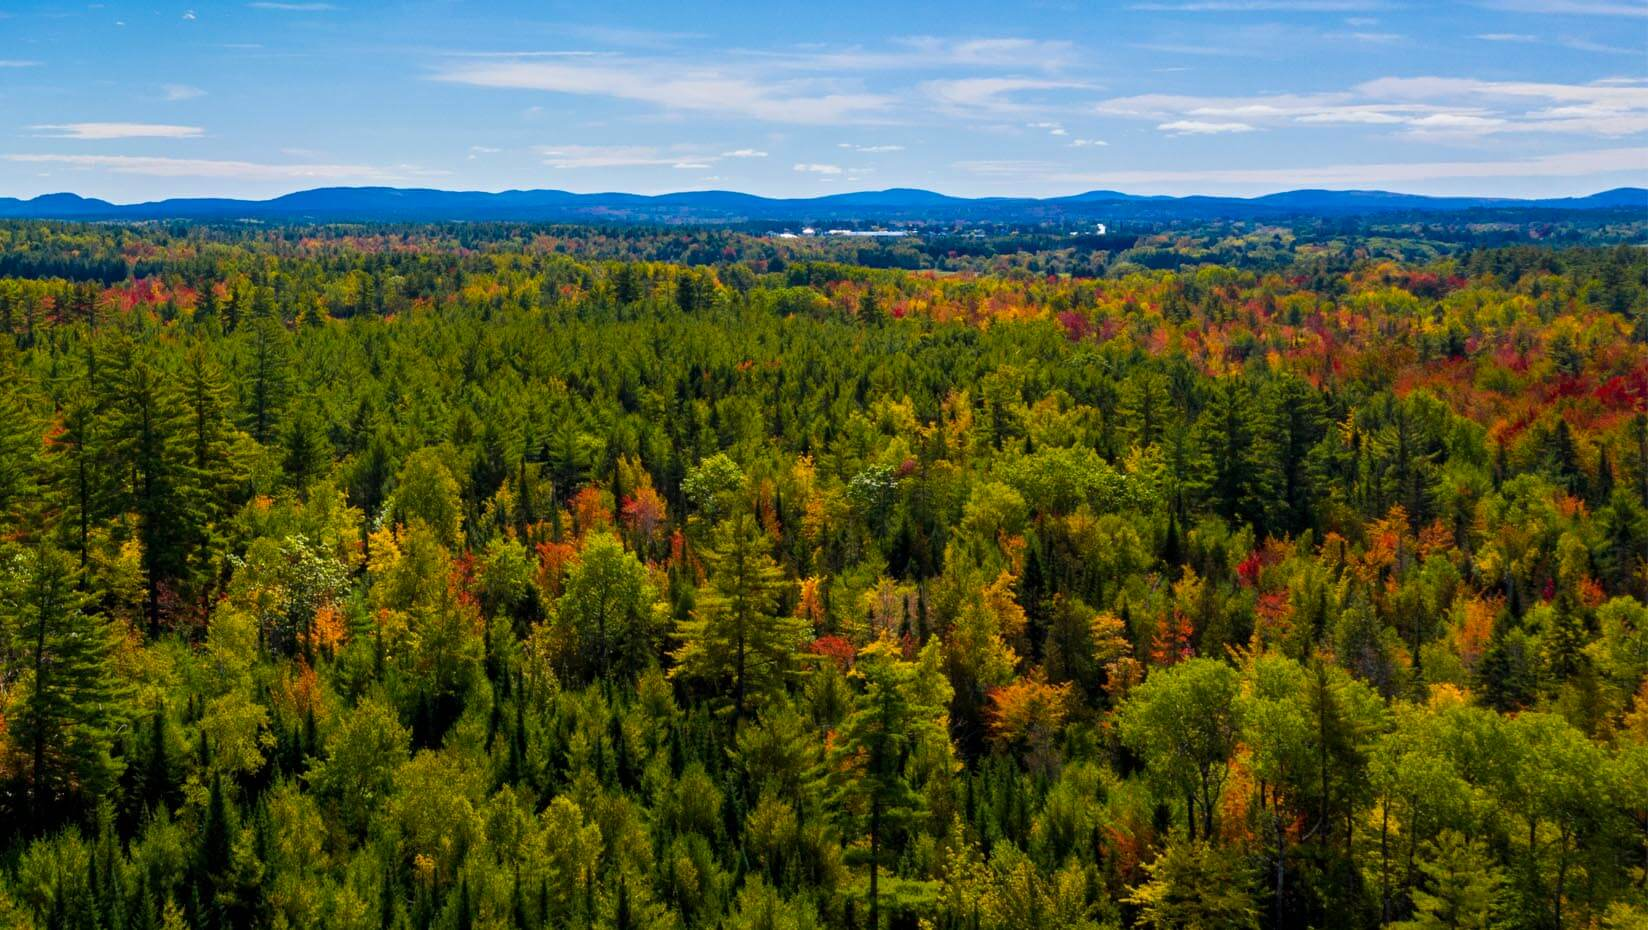 An aerial image of a Maine forest with some trees turning bring fall colors